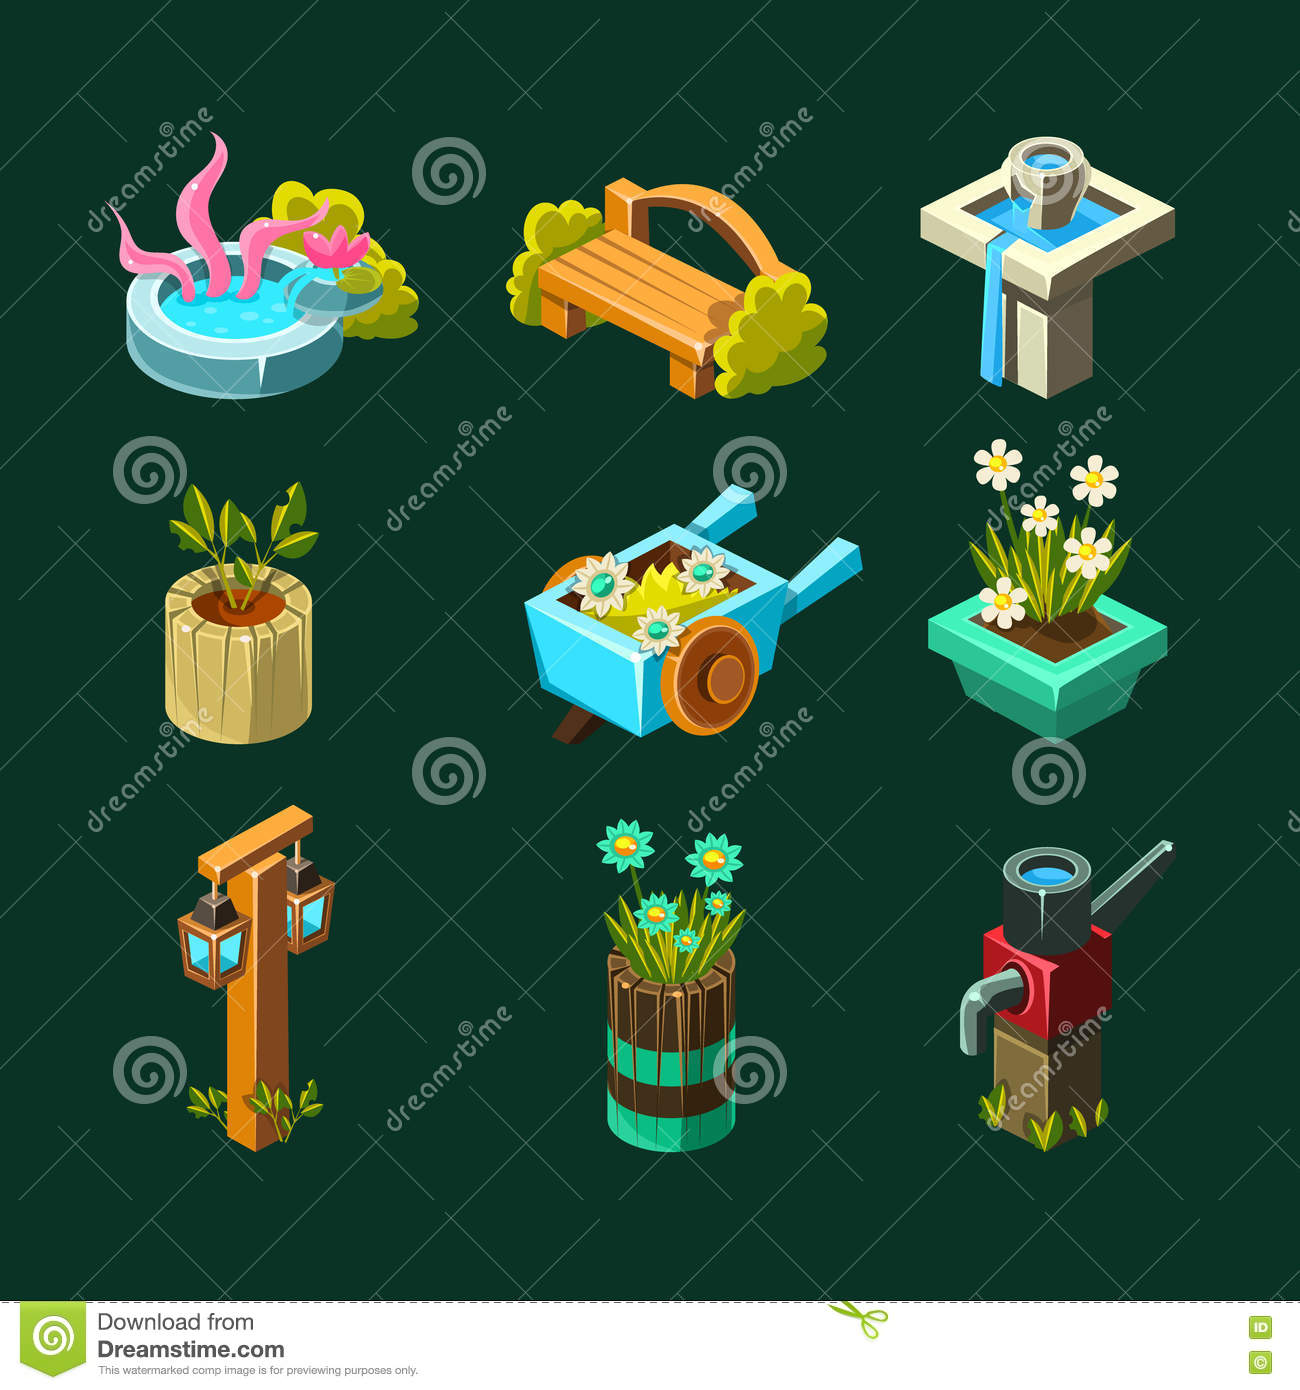 Garden Design Games Collection Classy Video Game Garden Design Collection Of Elements Stock Vector . Design Inspiration